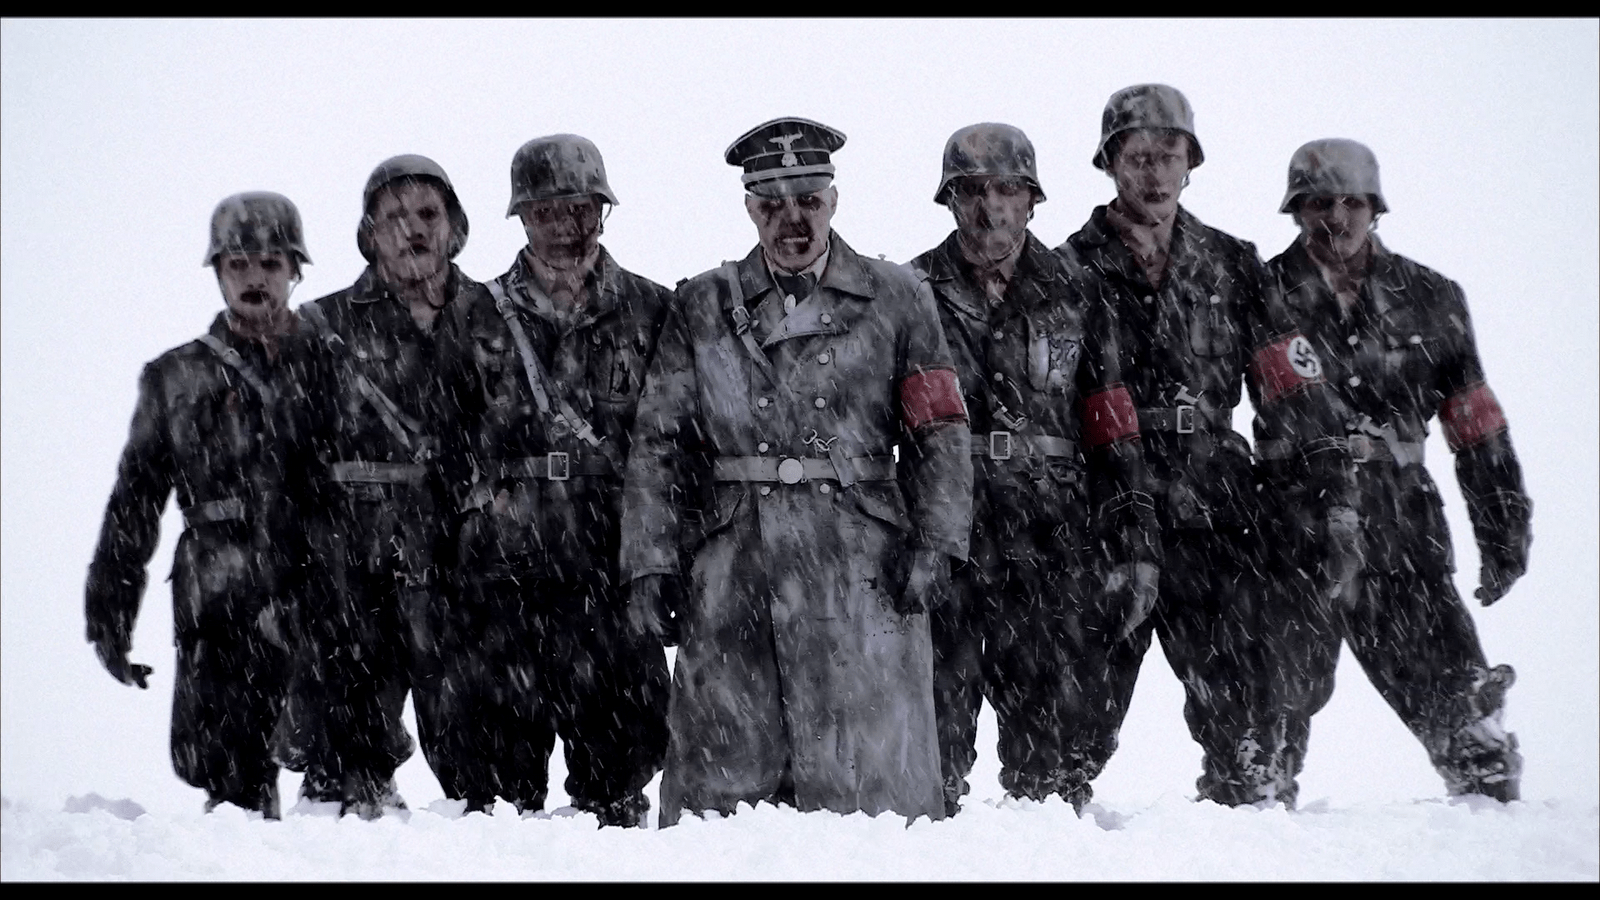 Black And Mustard Wallpaper Netflix Scary Movie Of The Week Dead Snow And Dead Snow 2